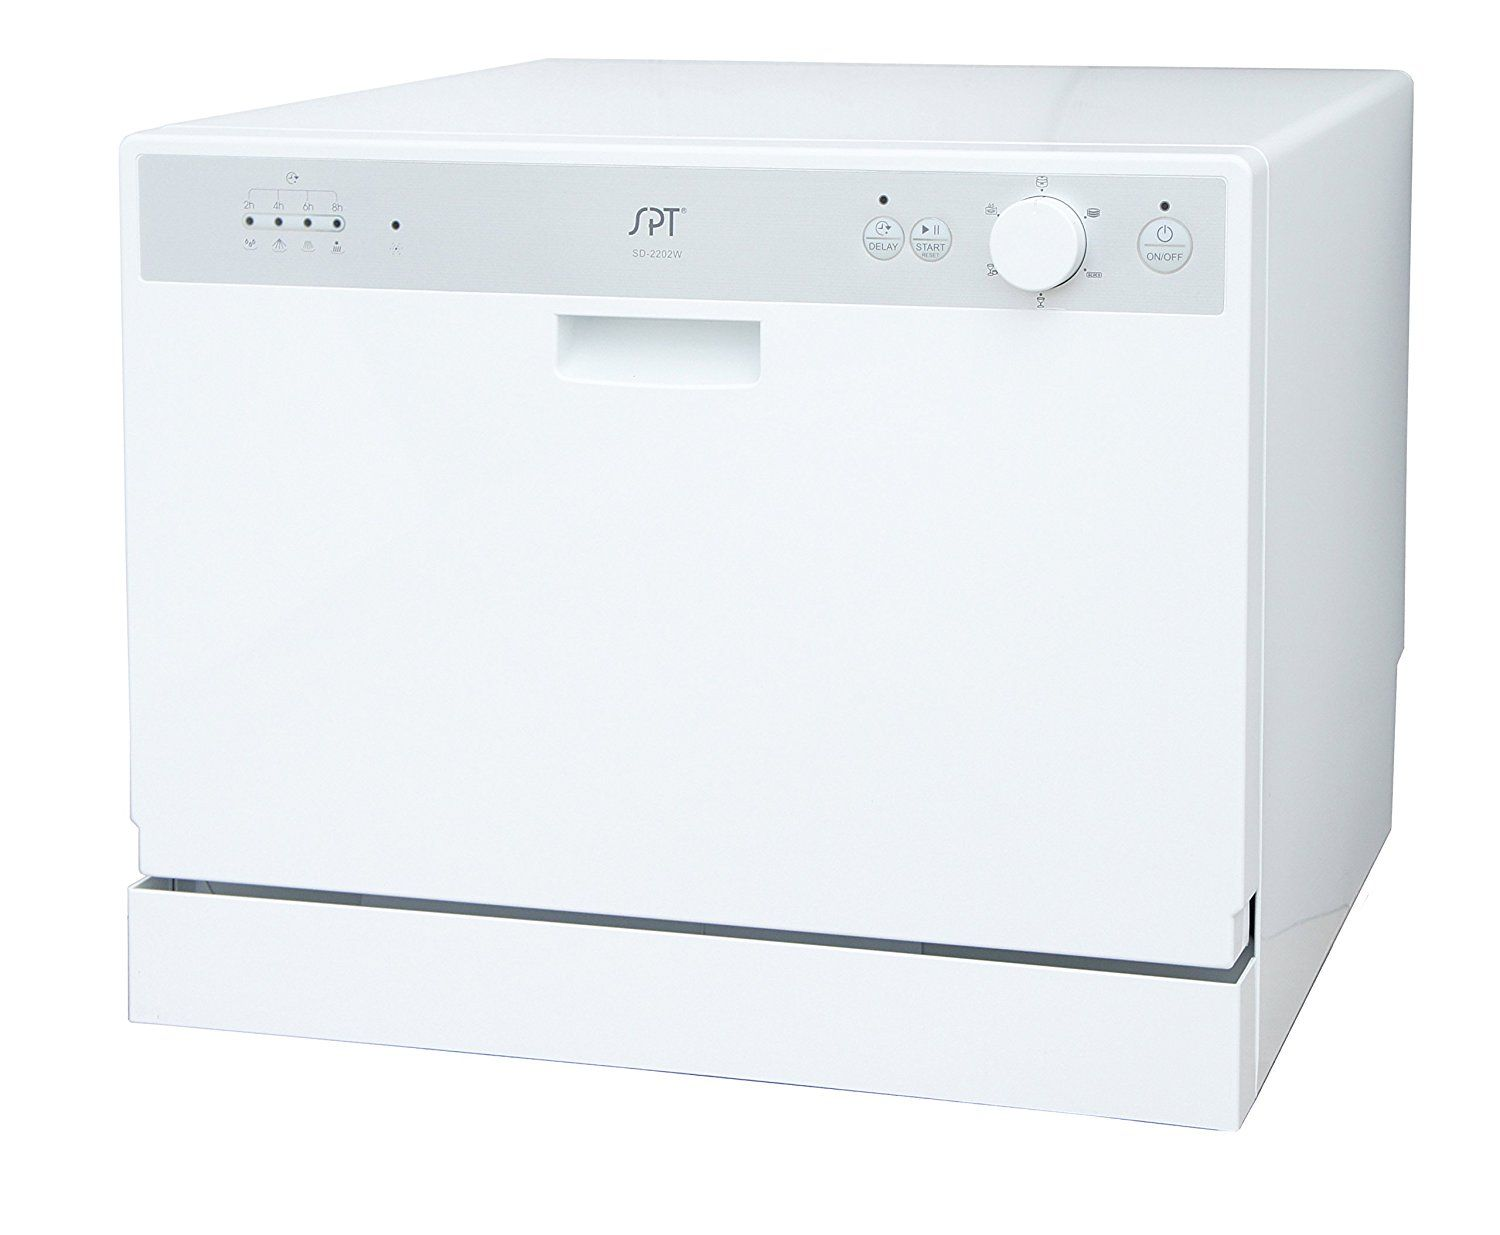 Pin On Best Portable Countertop Dishwashers 2017